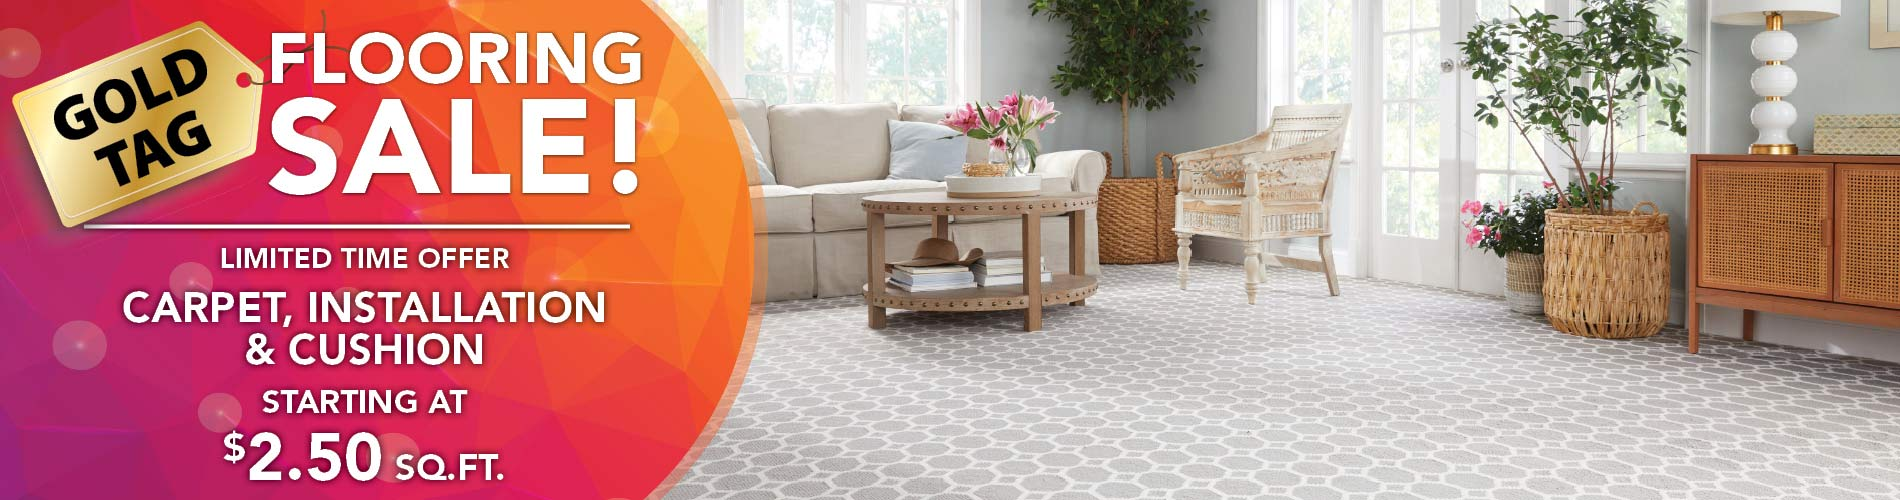 Gold Tag Flooring Sale! Carpet, installation, and cushion starting at $2.50 sq. ft.